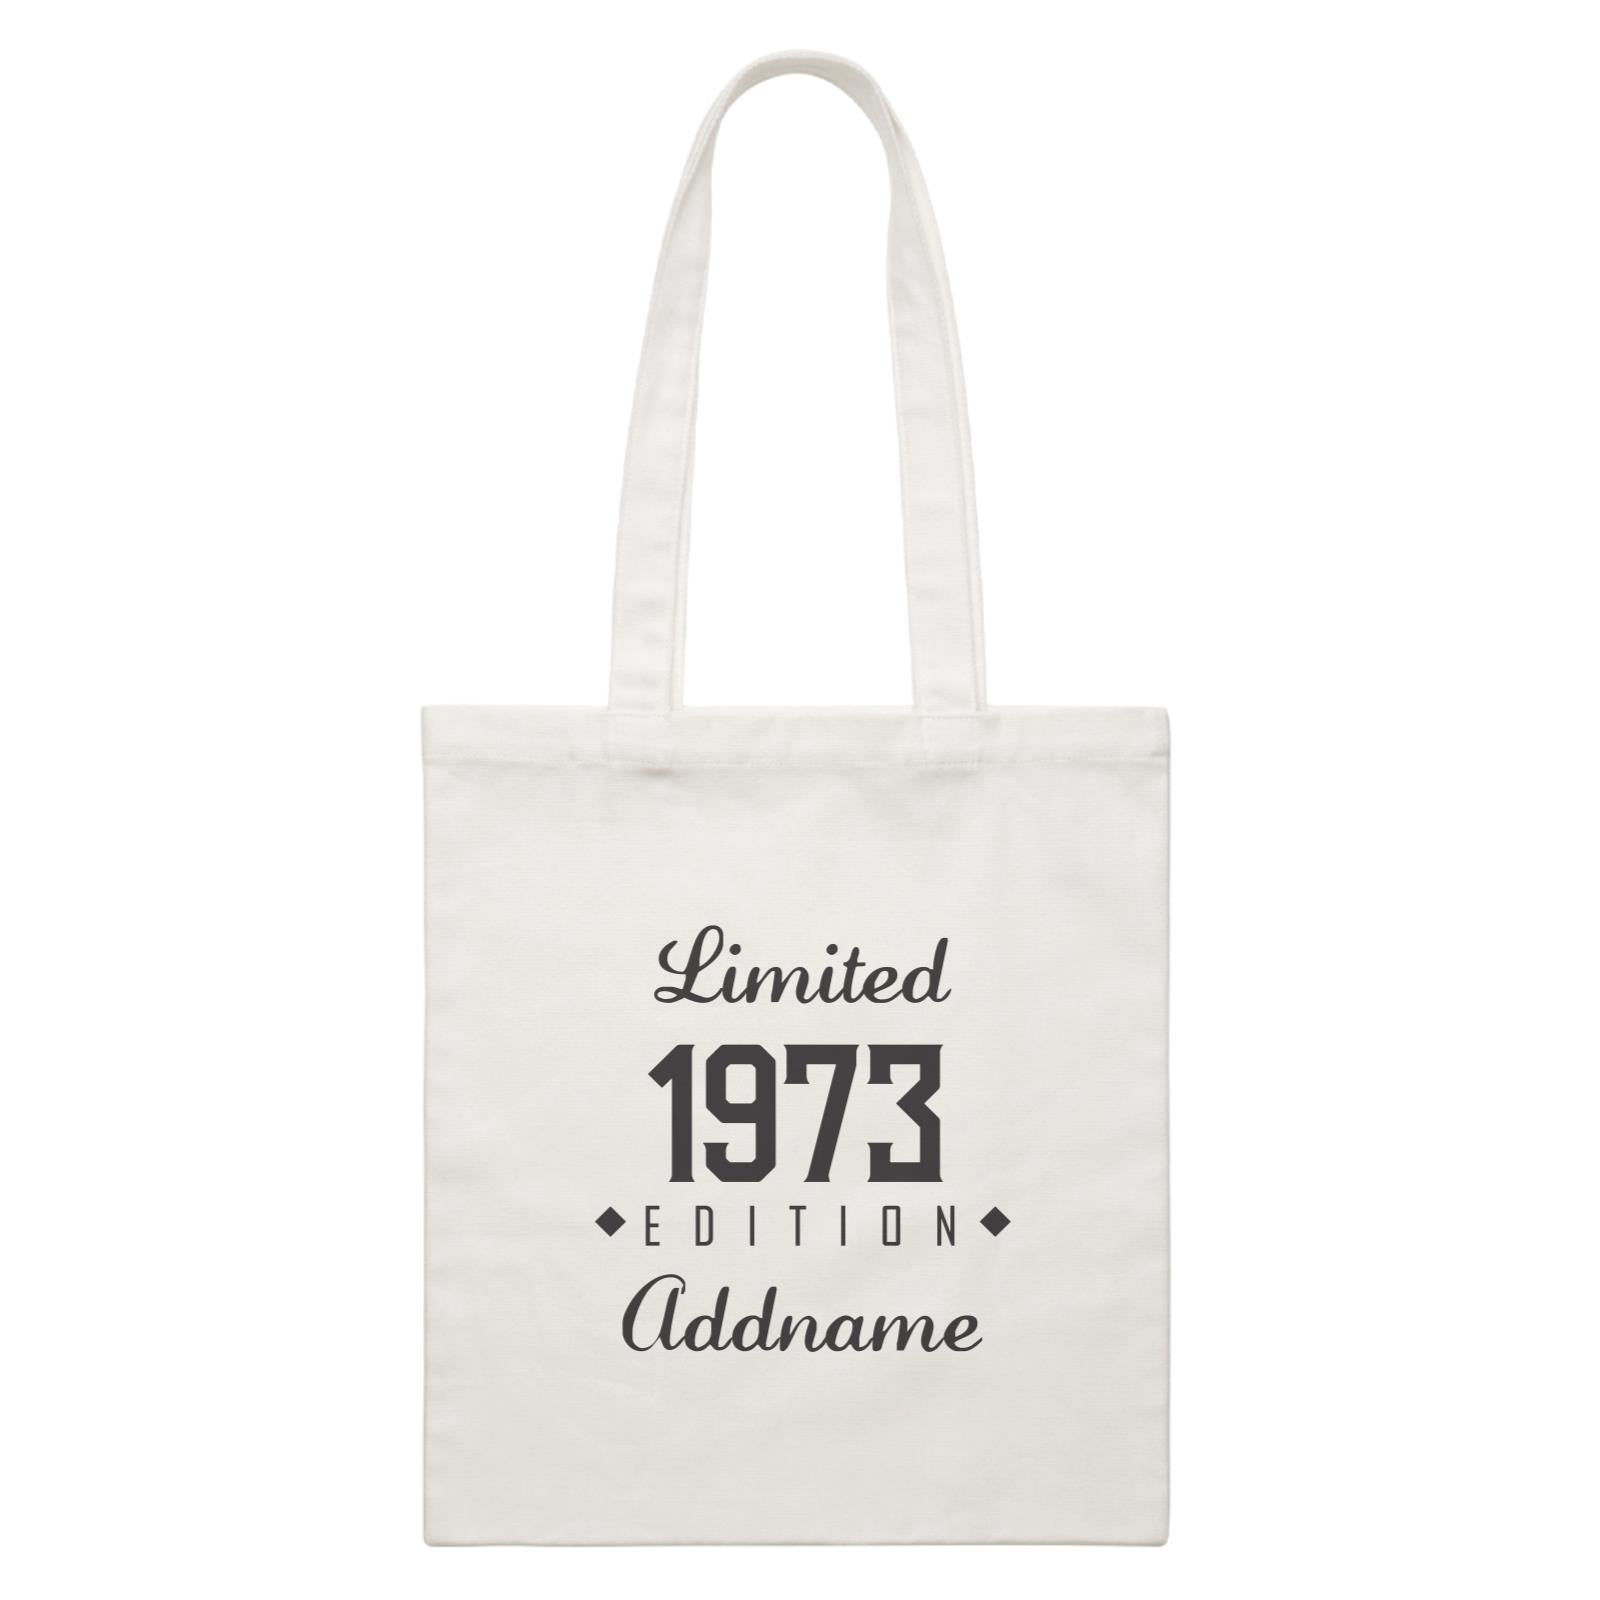 Personalize It Birthyear Limited Edition Diamond with Addname and Add Year White White Canvas Bag